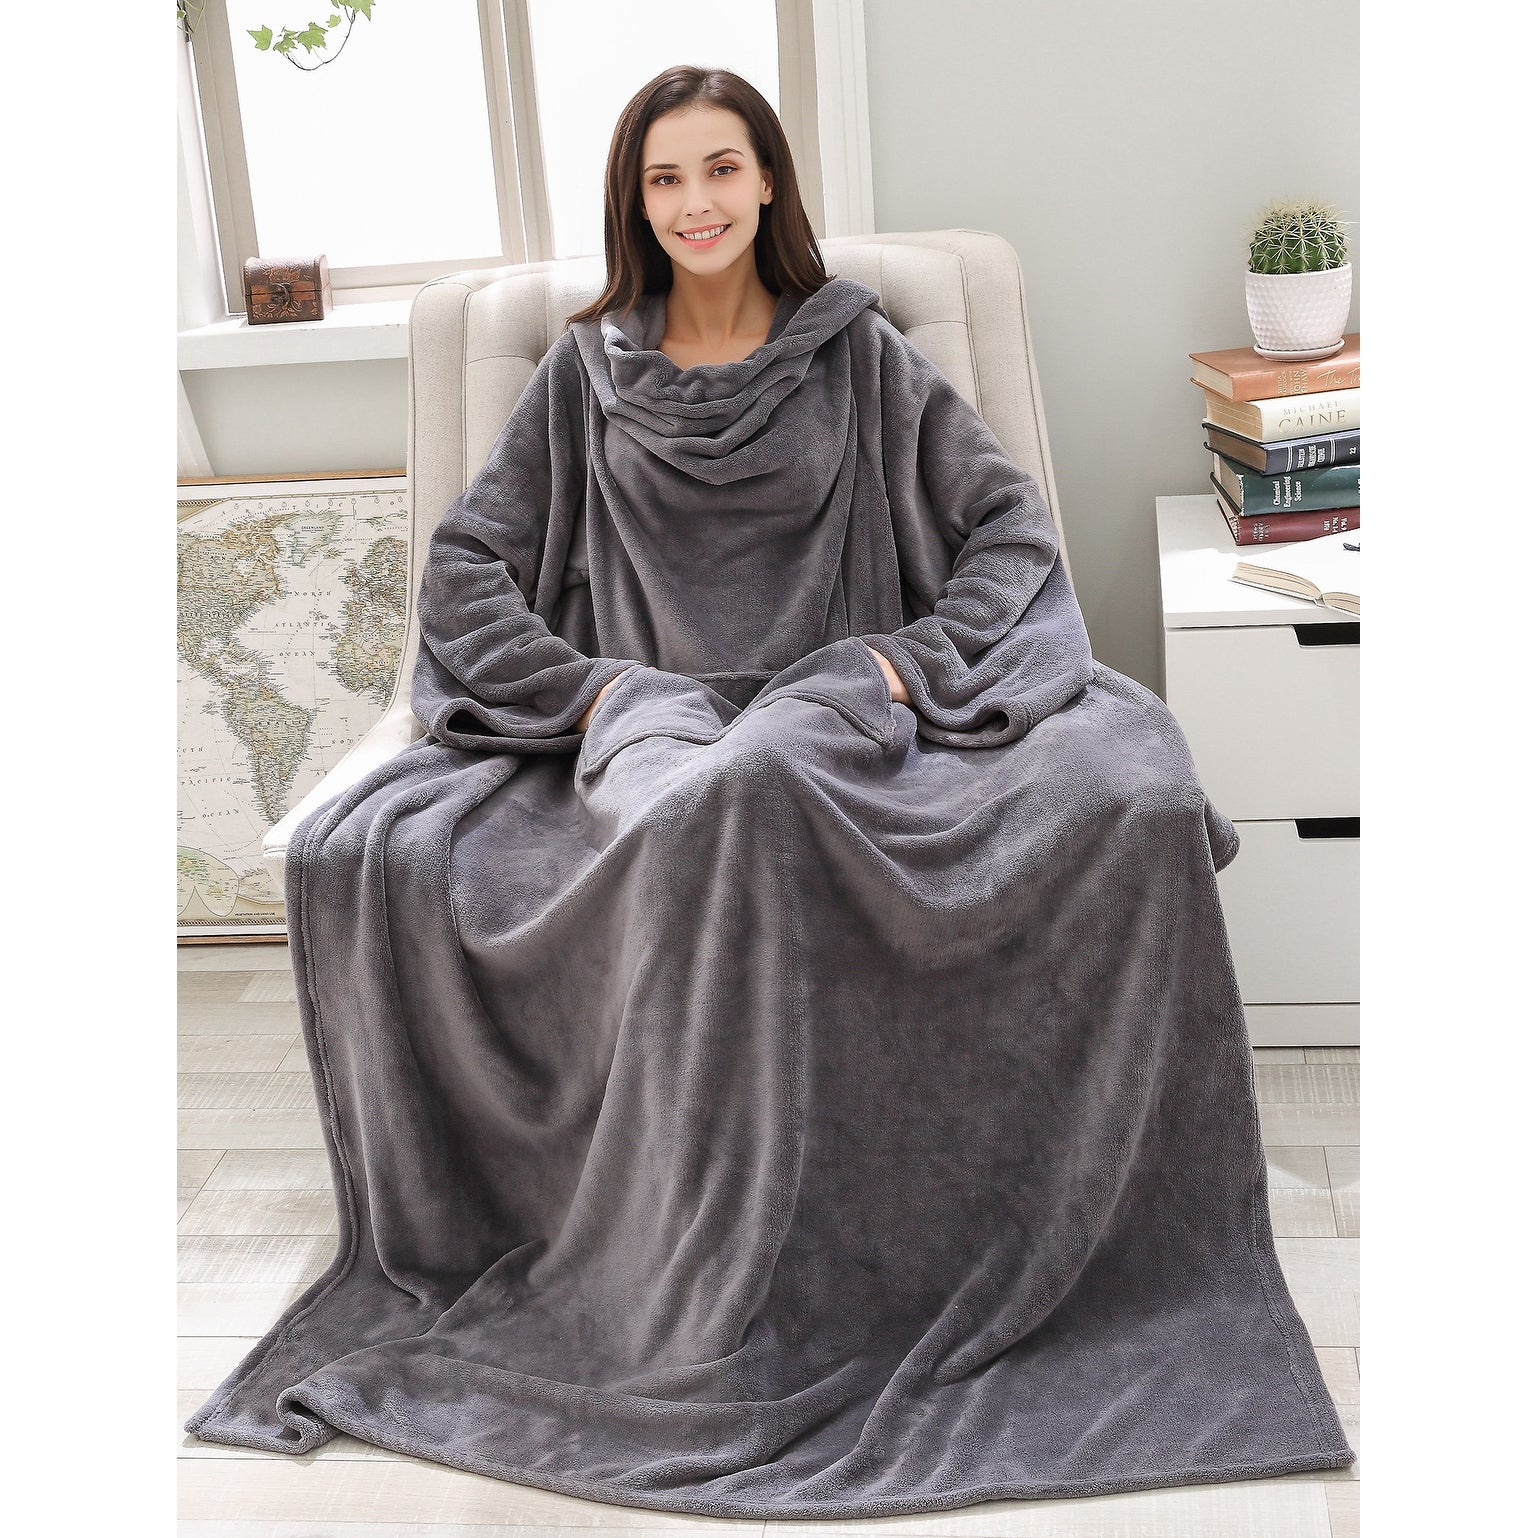 Richie House Soft And Warm Fleece Throw Blanket With Sleeves Grey One Size